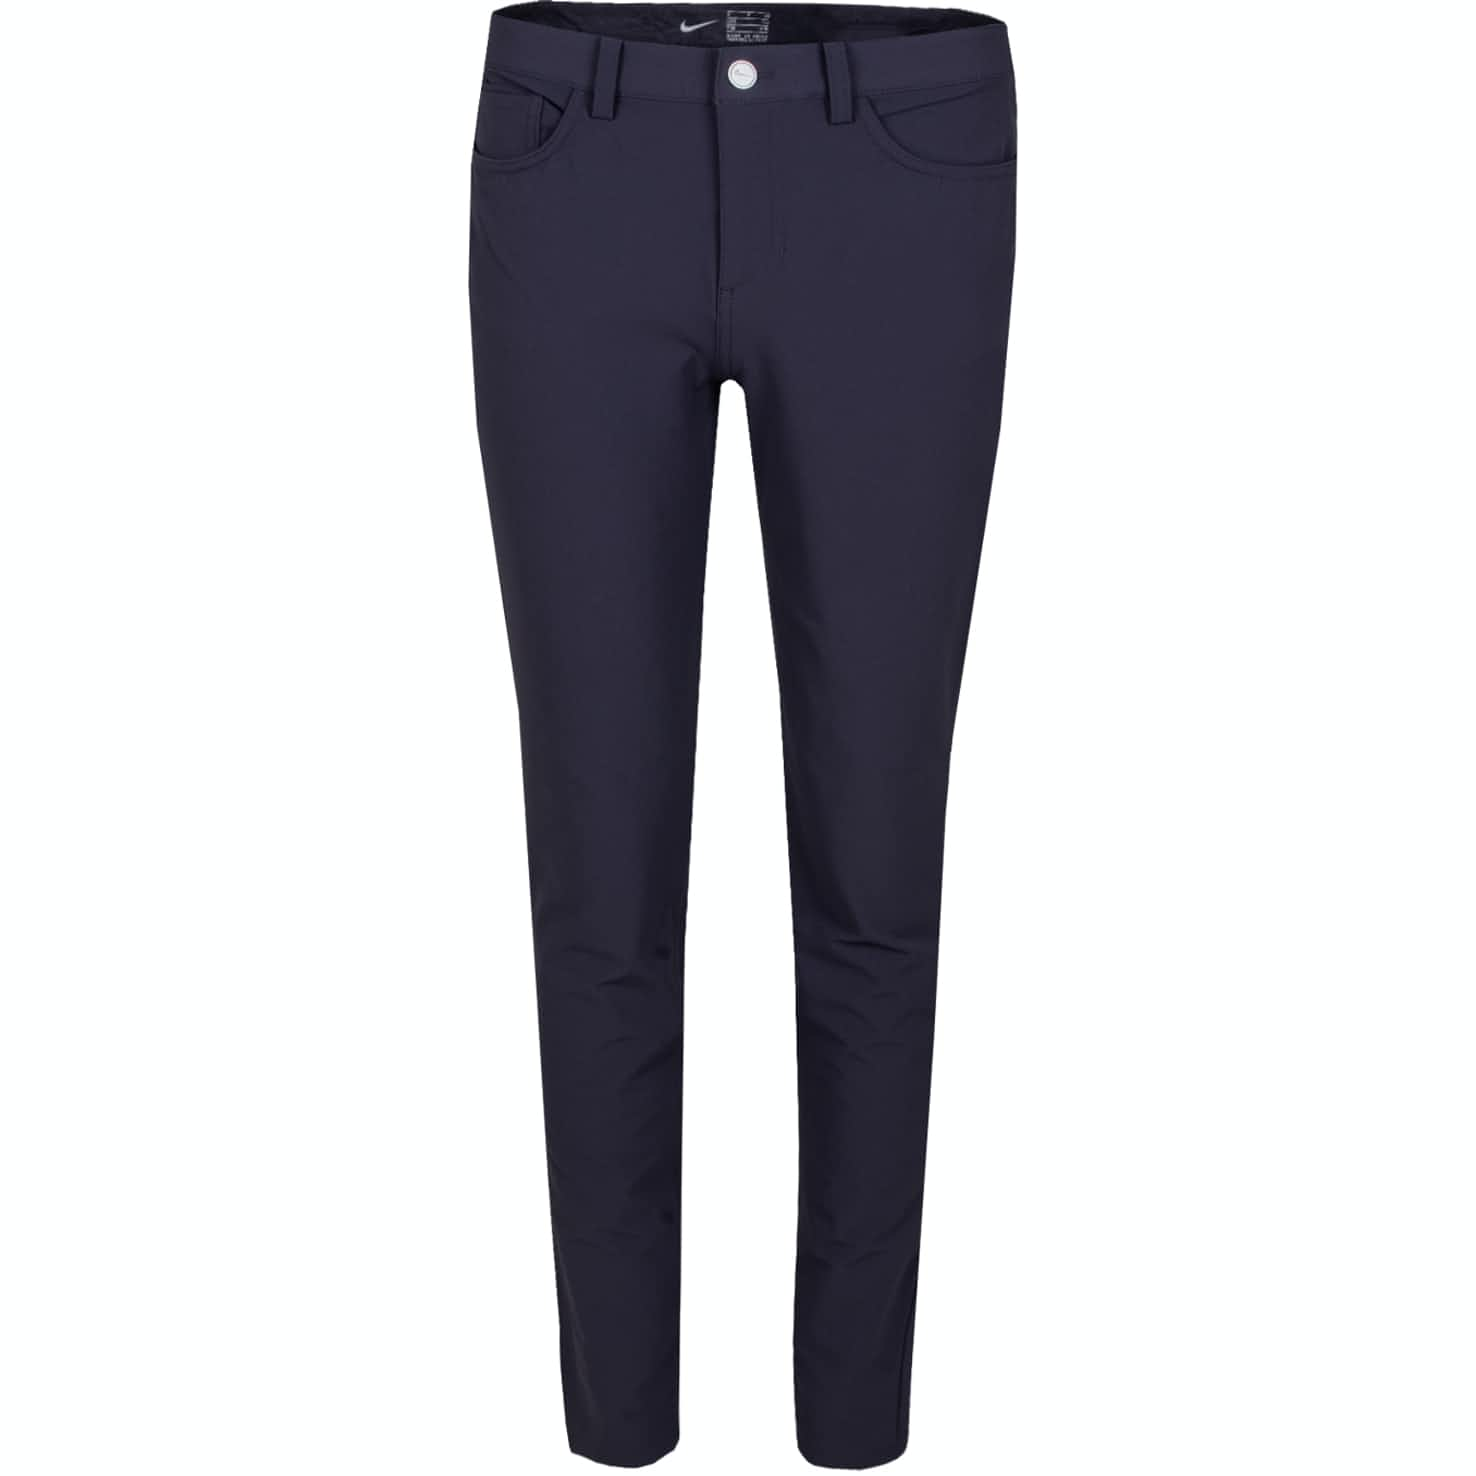 Womens Slim Warm Pants Gridiron - AW19